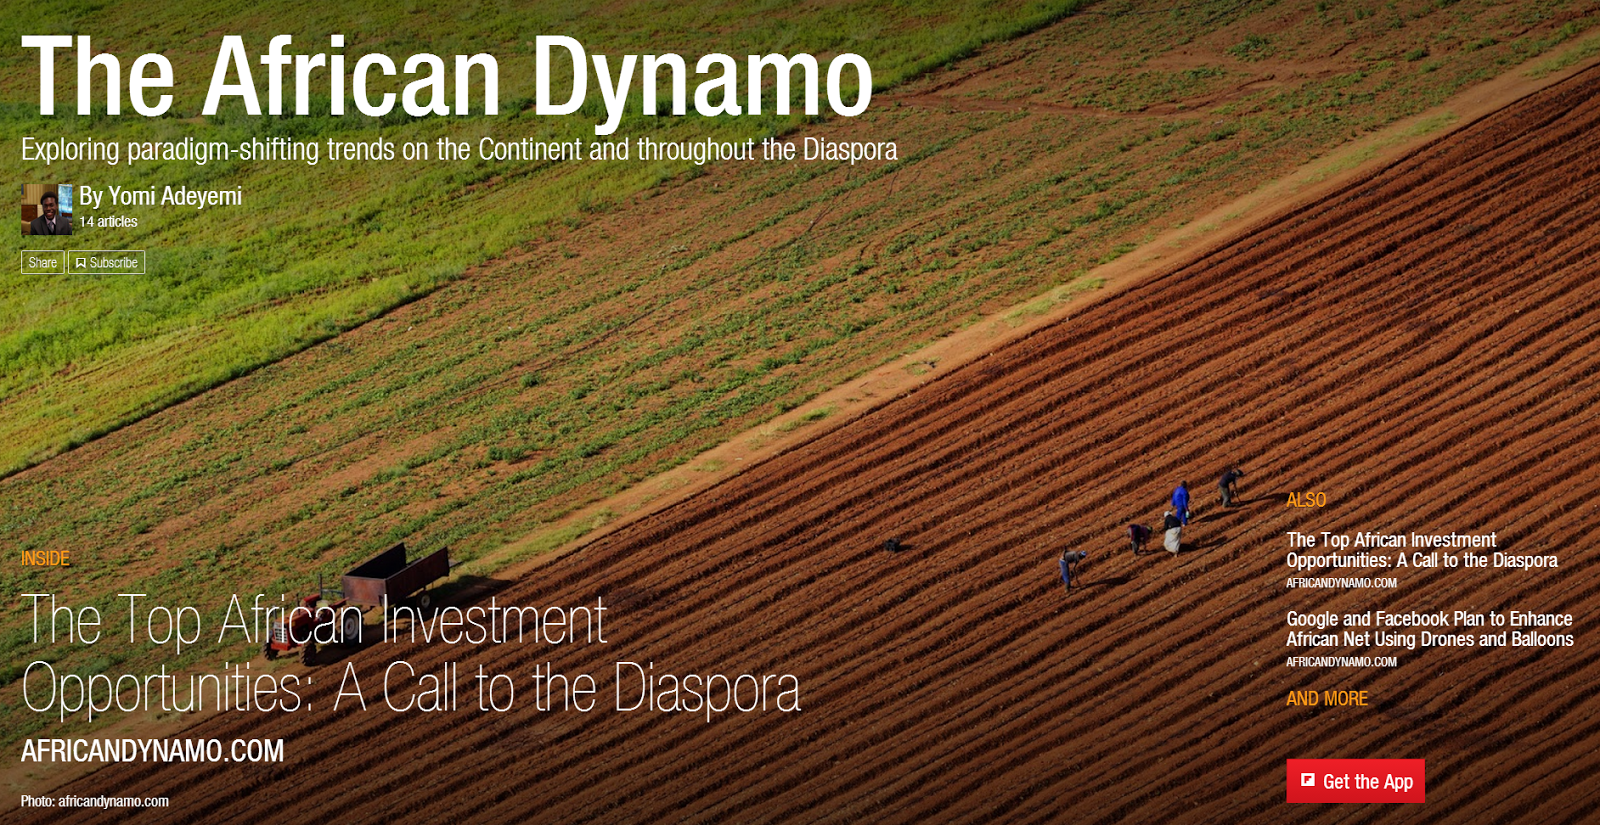 African Dynamo Magazine. Now on Flipboard http://t.co/kNJHrwcDnn